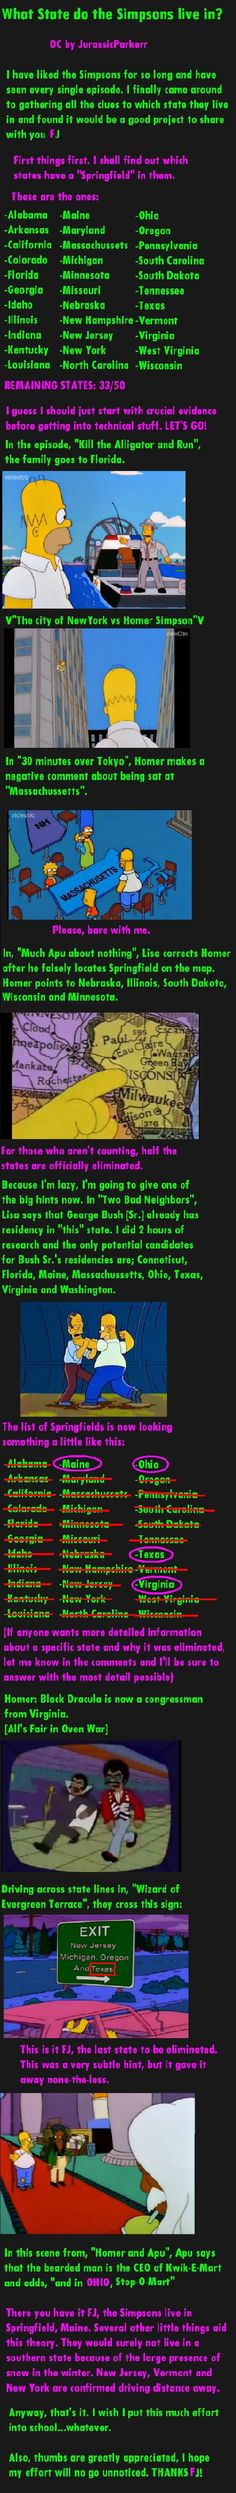 Which State do the Simpsons live in?